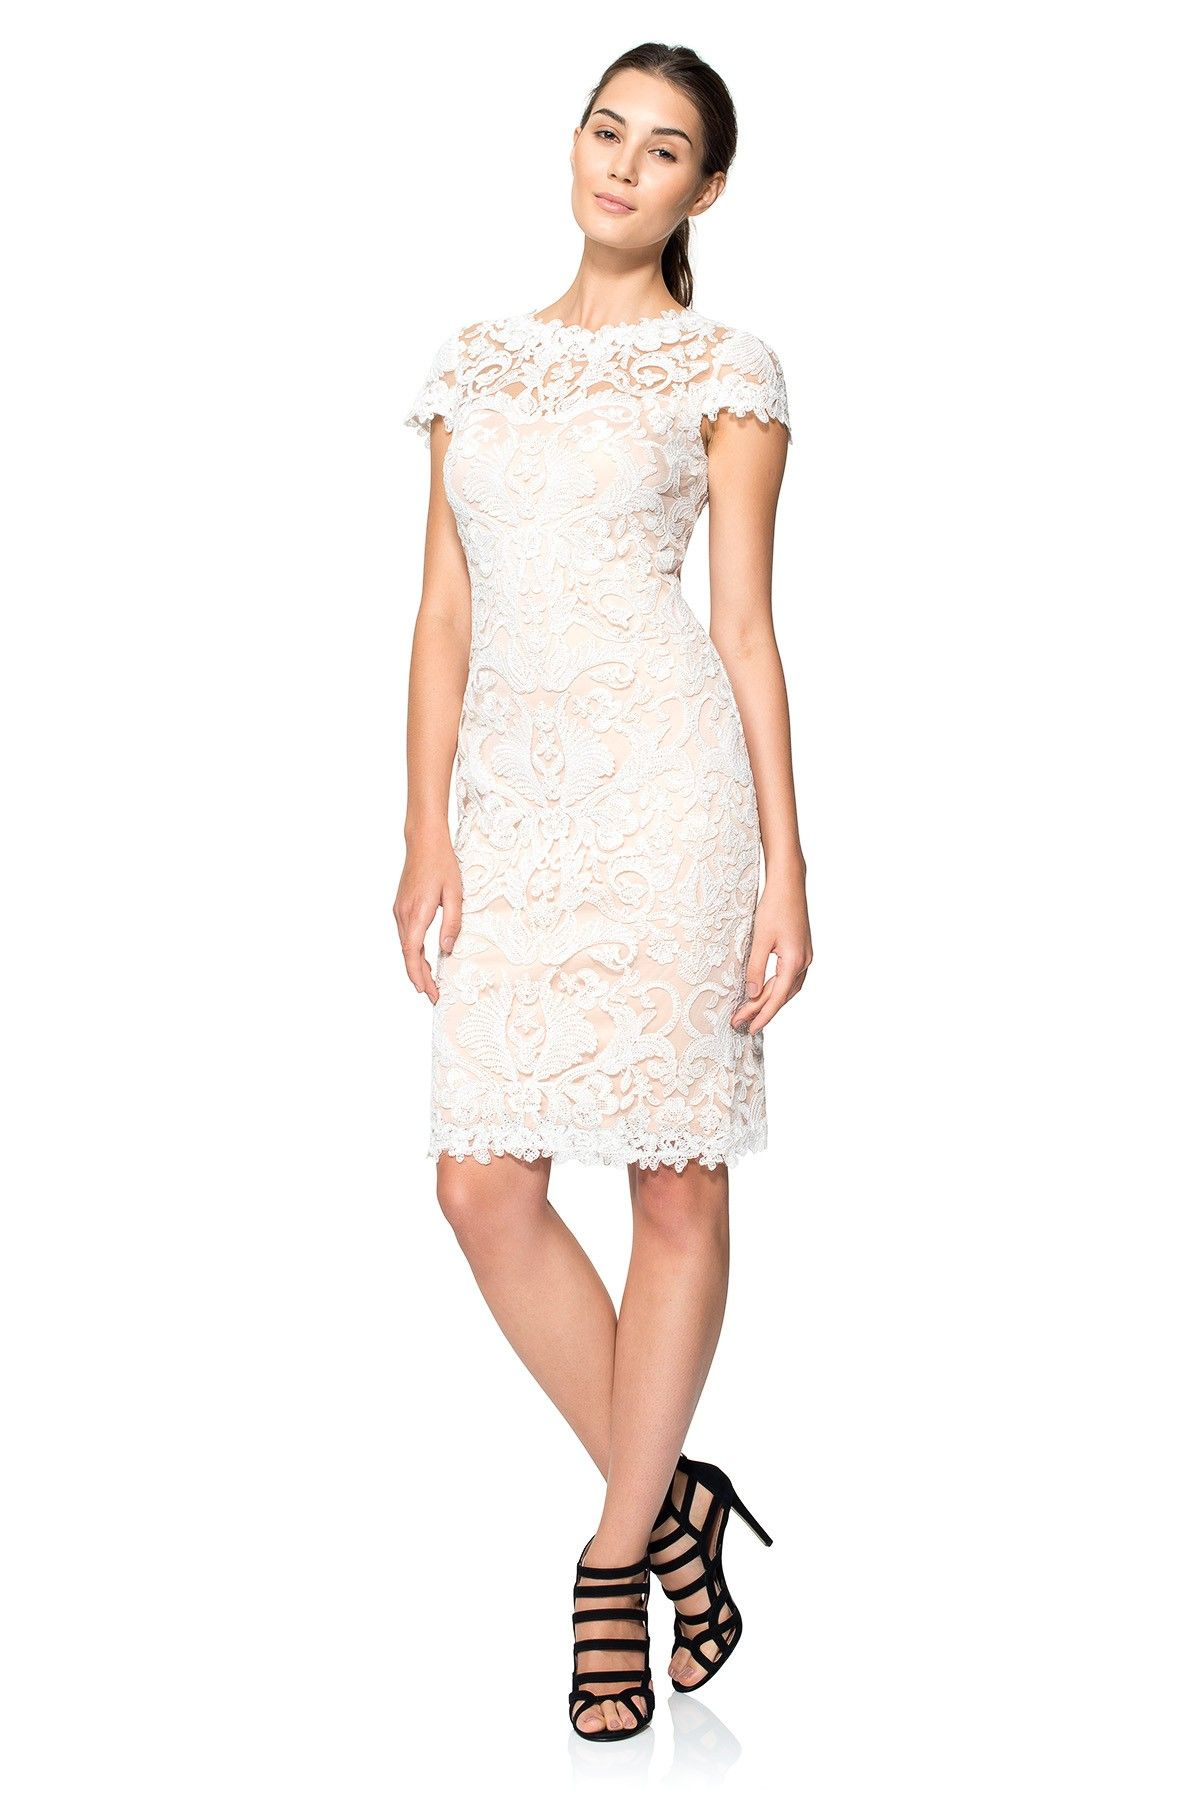 Petite dresses with sleeves for weddings  Corded Embroidery on Tulle Cap Sleeve Dress  PETITE  Tadashi Shoji